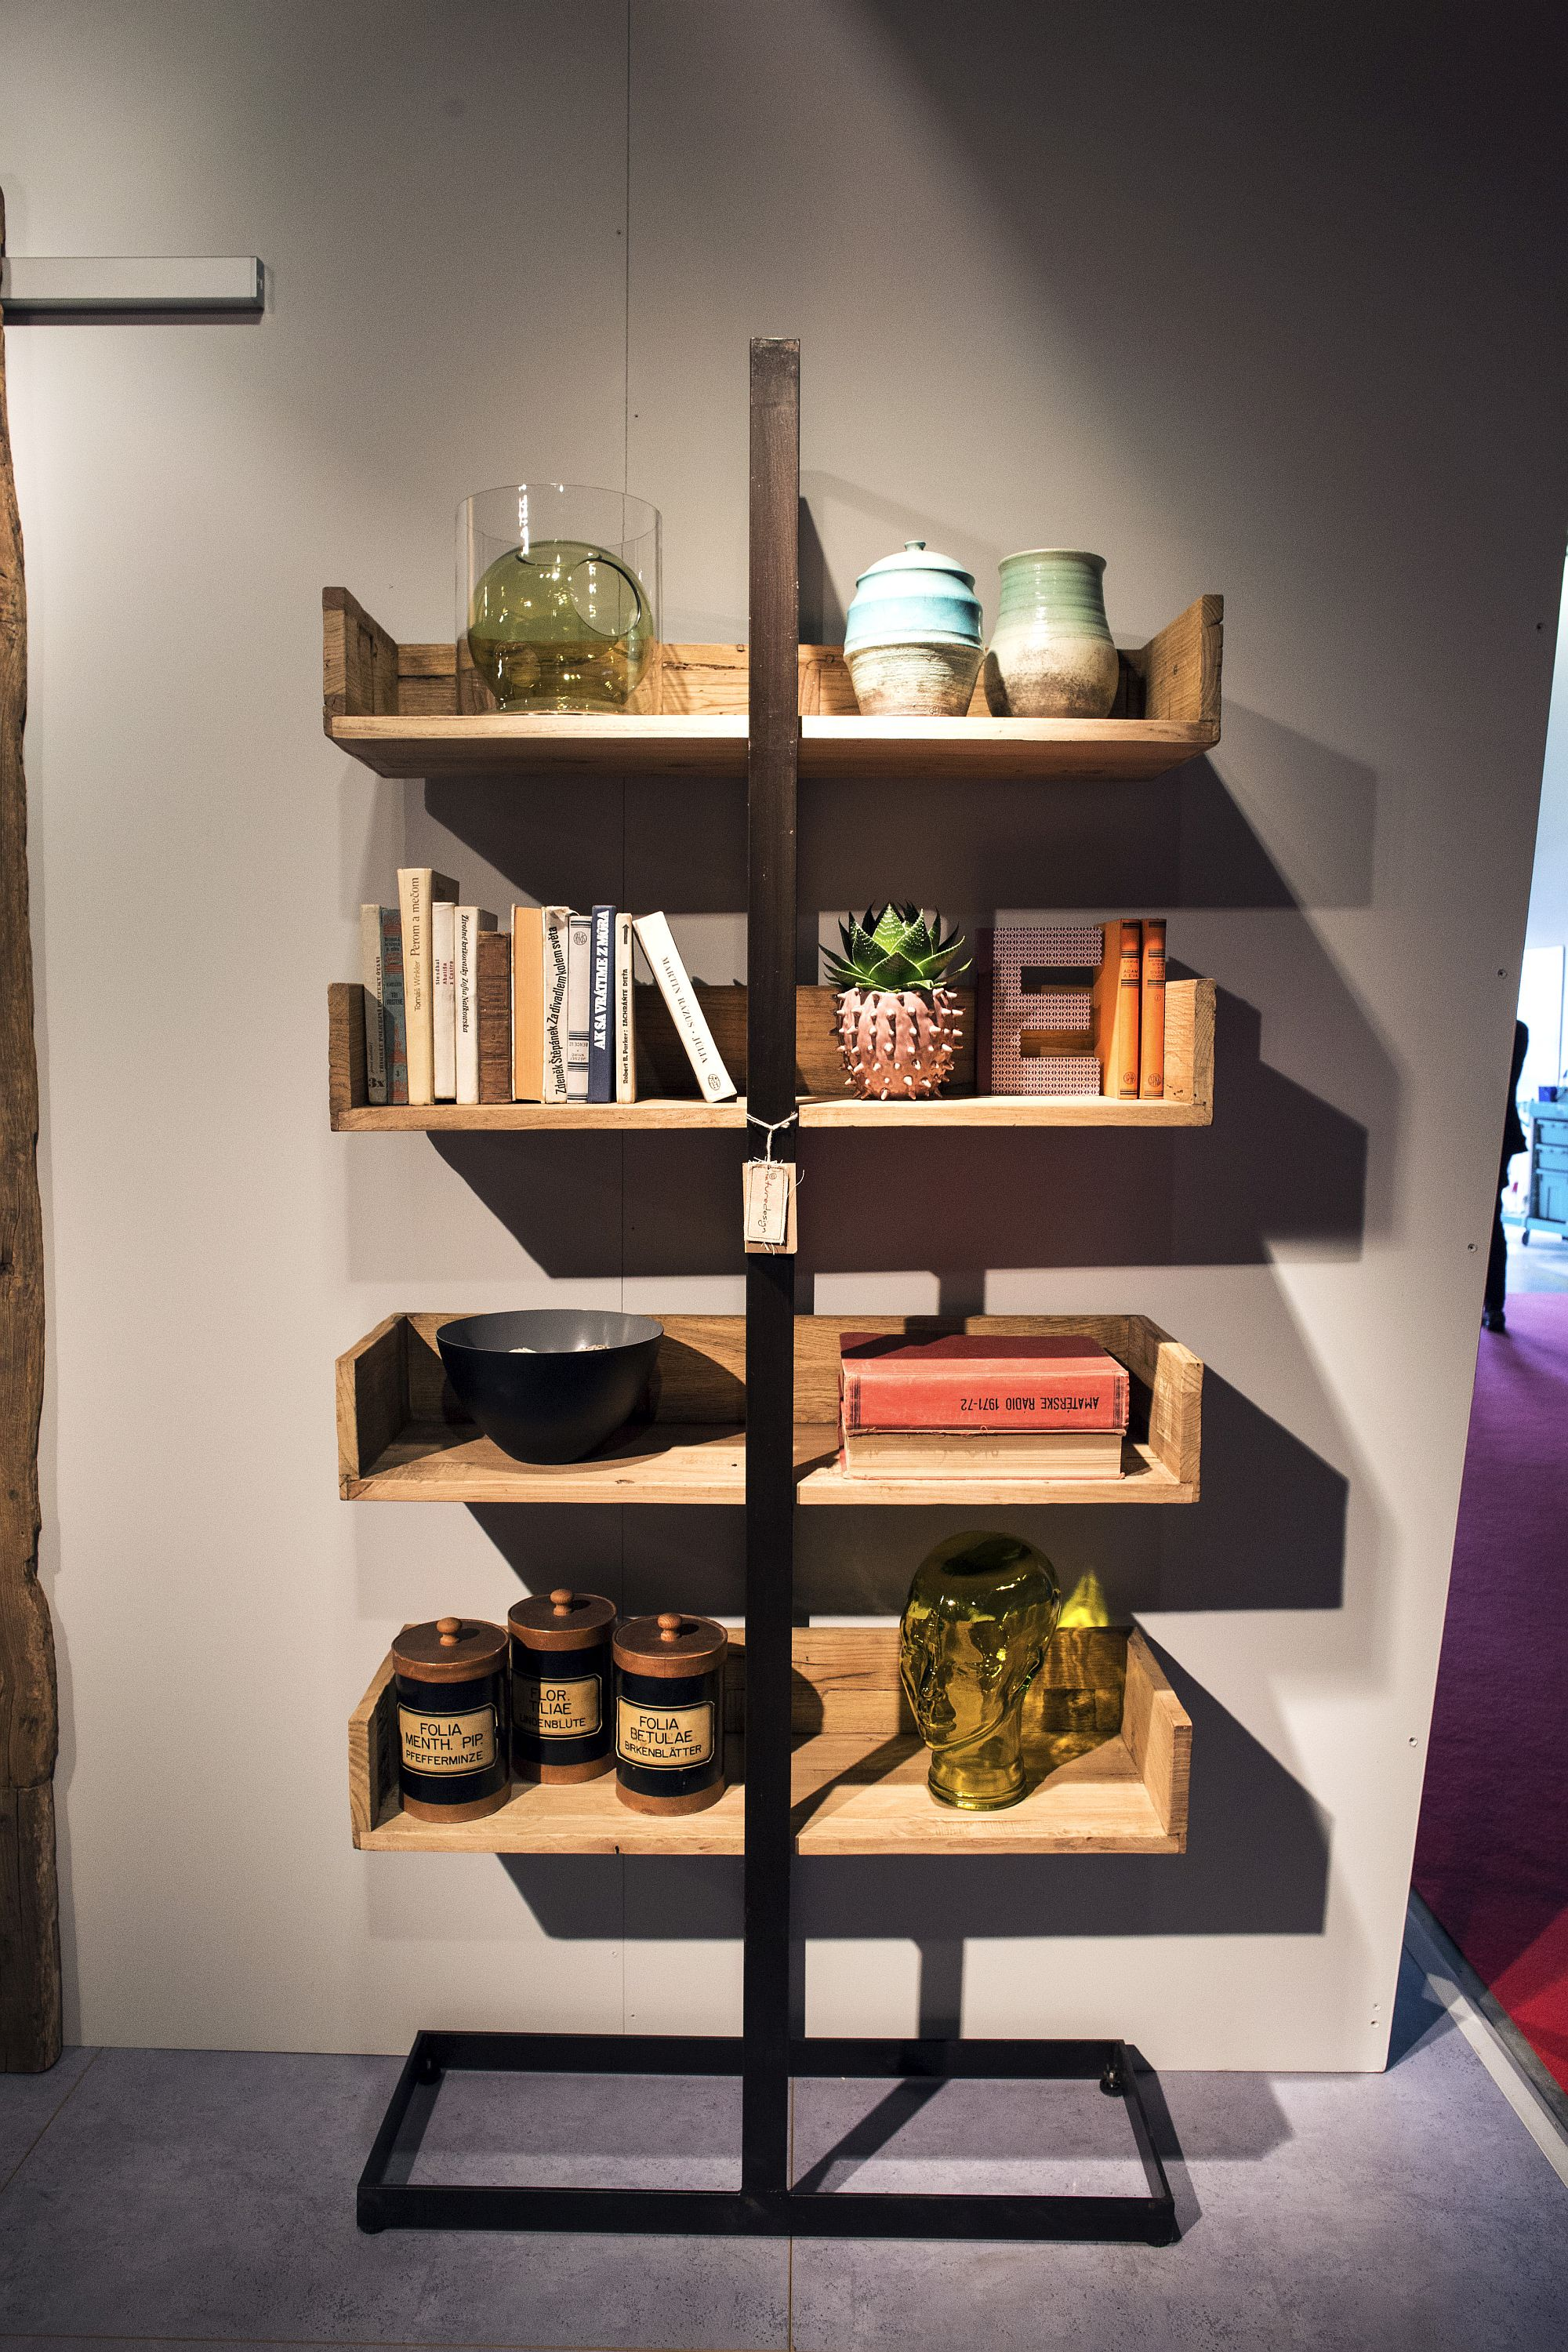 Whimsical Shelves 11 Open Wooden Shelves Bringing Modularity And Decorating